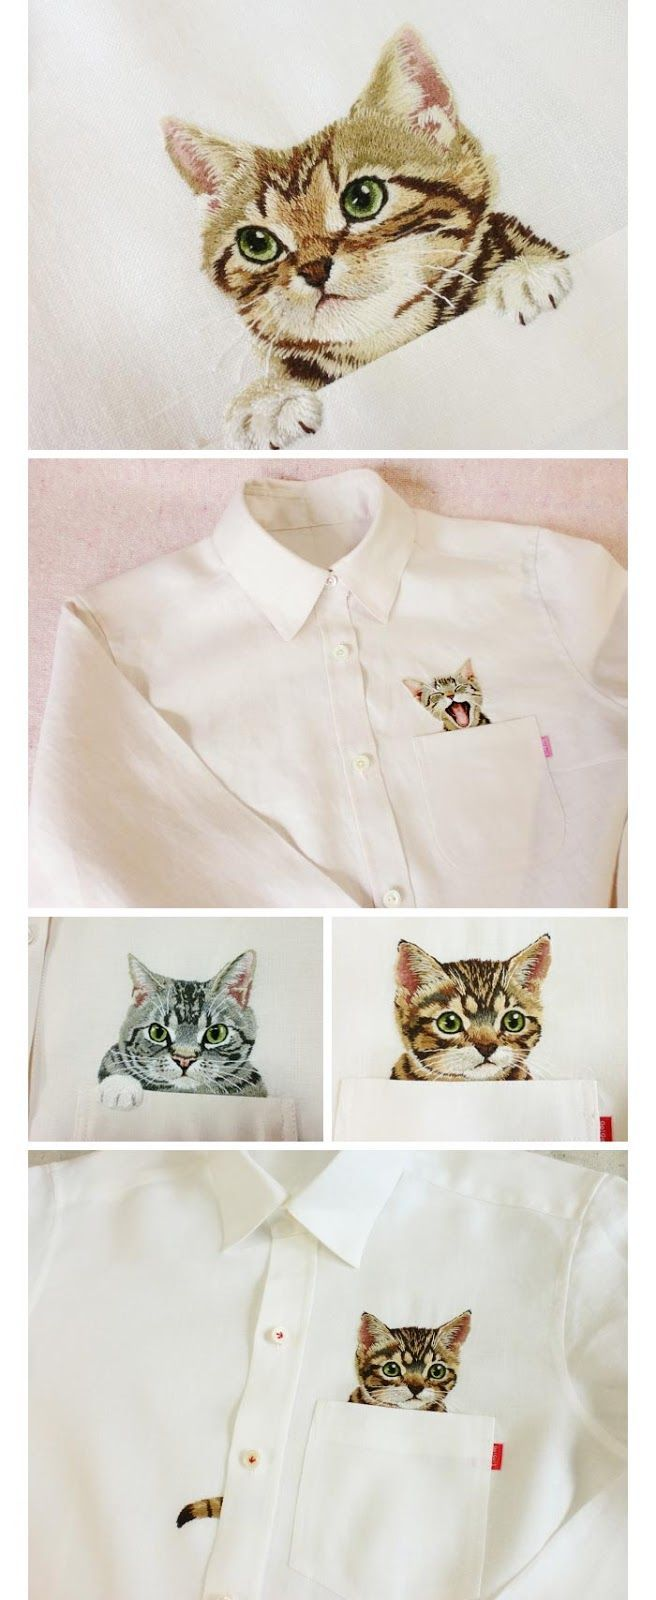 Embroidered kittens on shirts